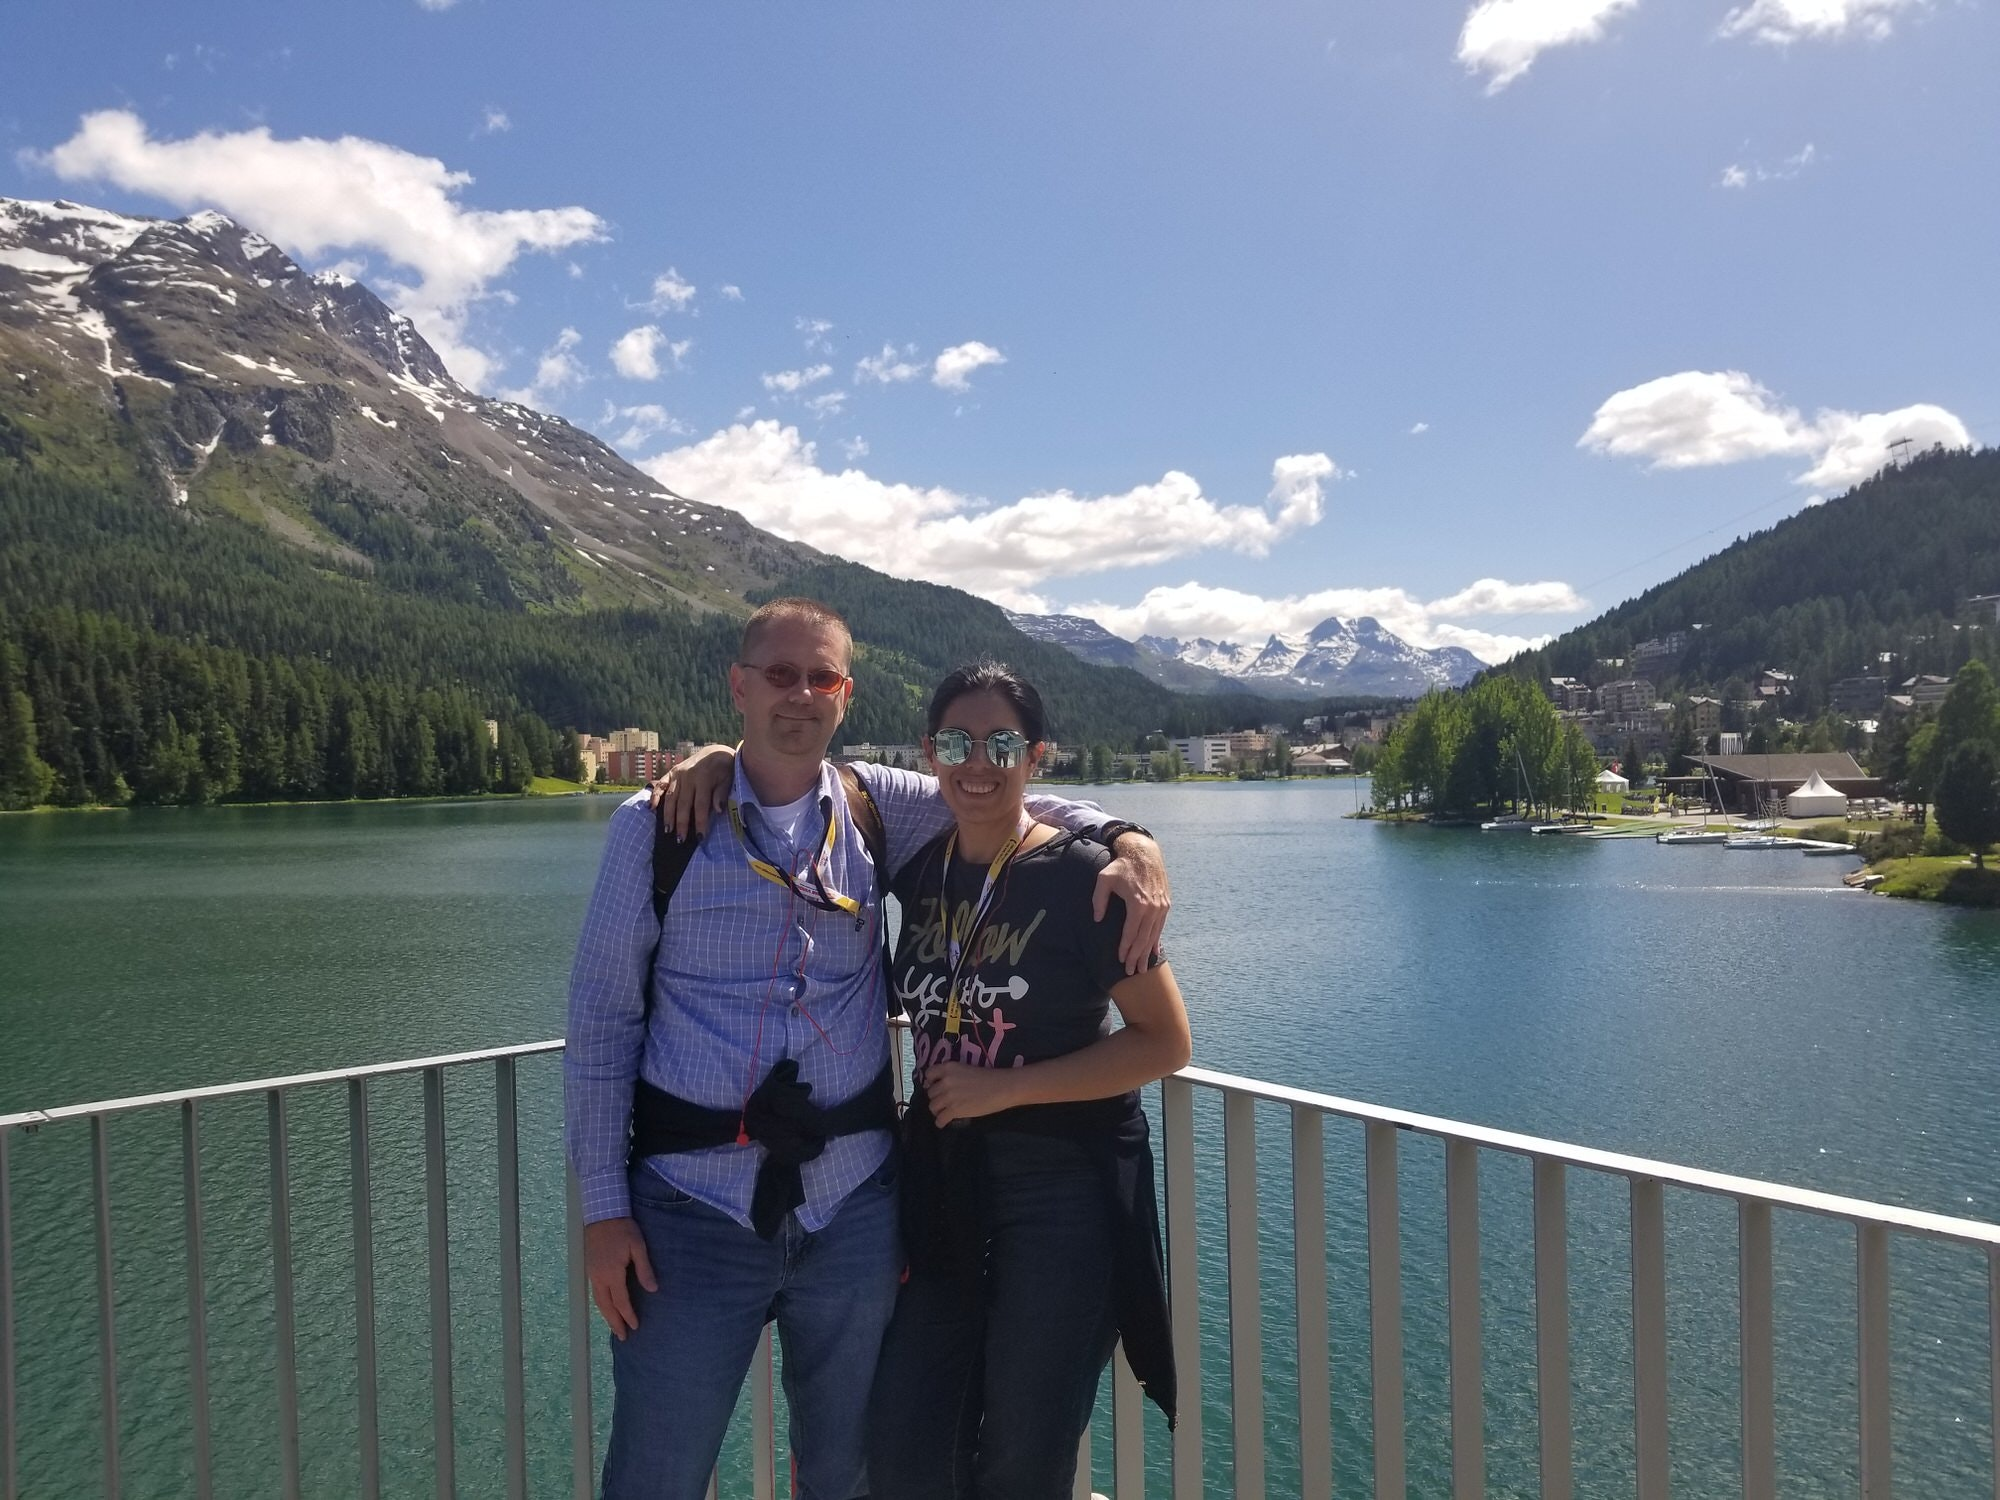 Lonely Planet Magazine contest winner shares highlights of a trip to Italy